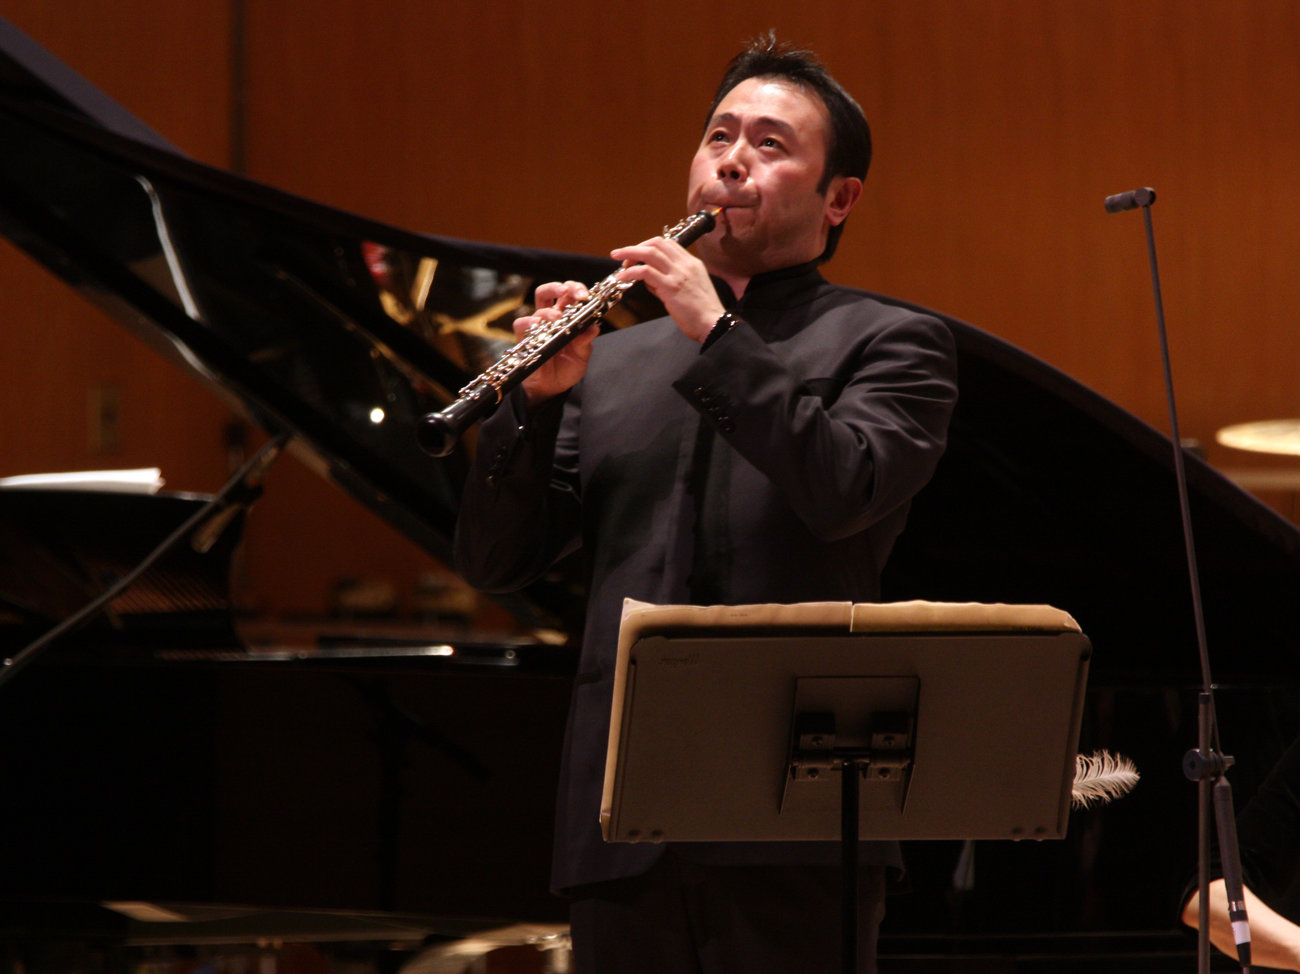 Liang Wang, playing with the New York Philharmonic at New York's Metropolitan Museum of Art in 2013.  Hiroyuki Ito/Getty Images